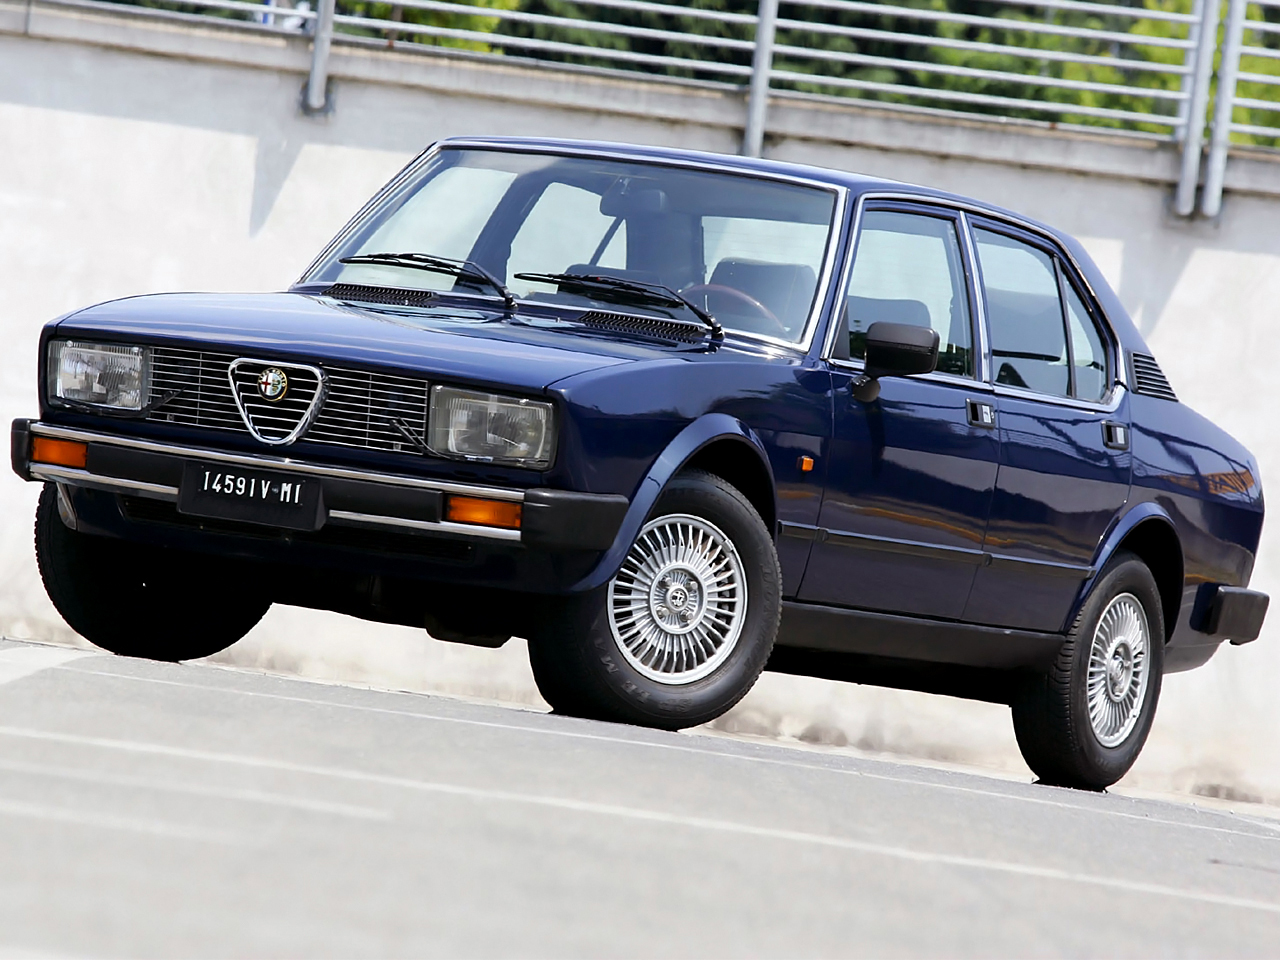 2018 Alfa Romeo Alfetta 2.0 photo - 5